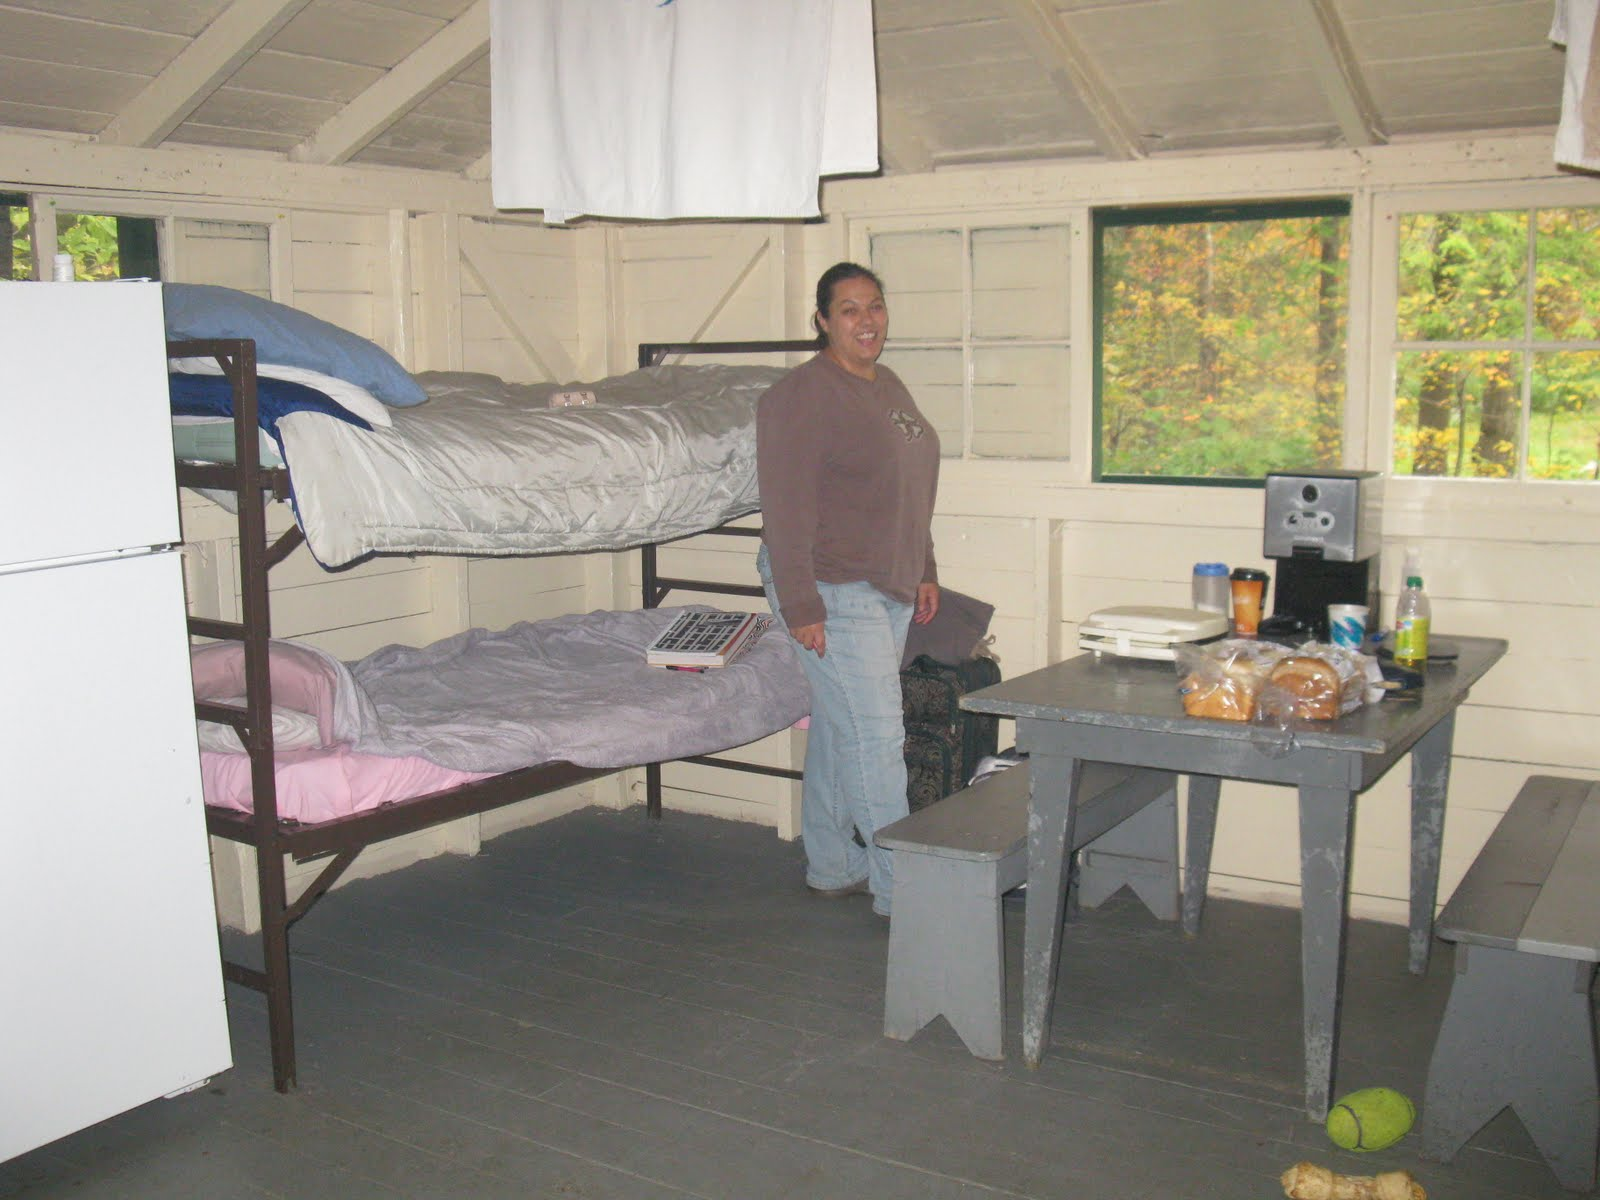 Cabin Camping At Allegany State Park 9 24 10